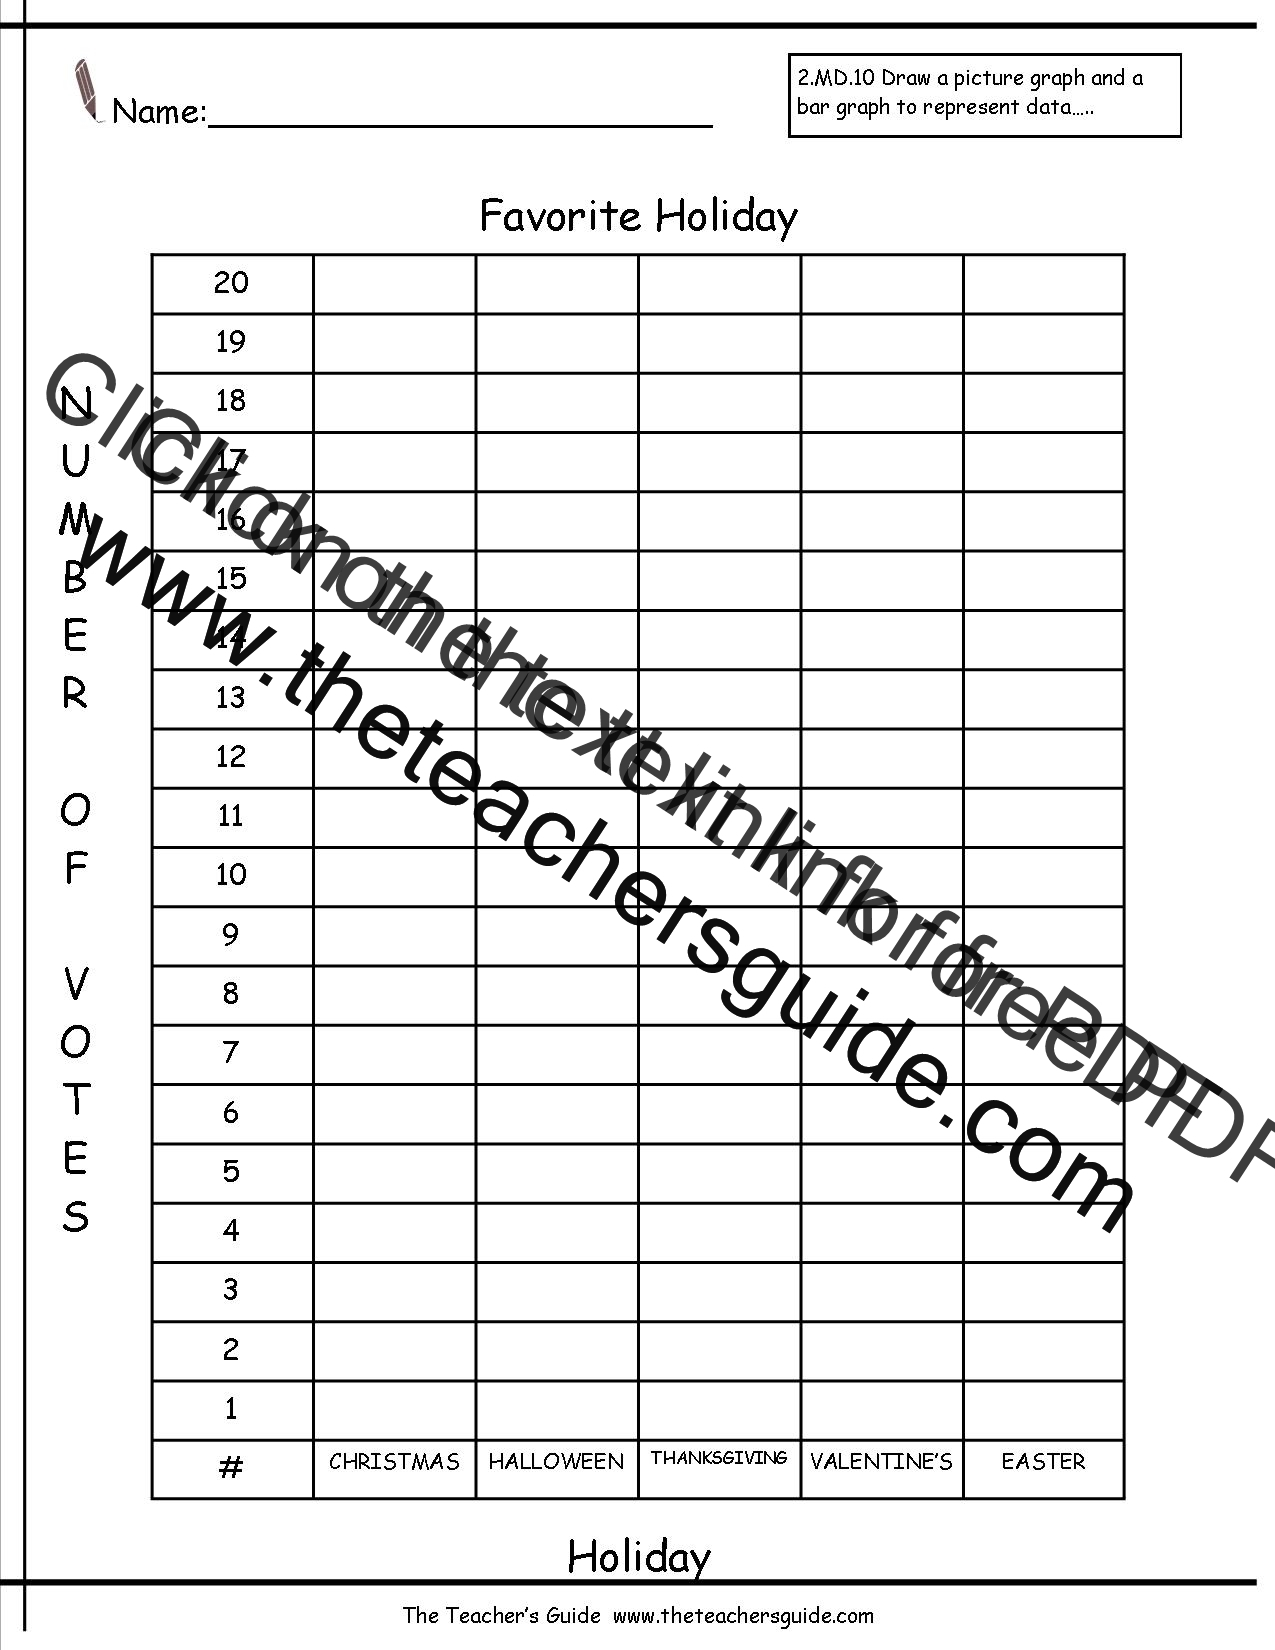 Reading And Creating Bar Graphs Worksheets From The